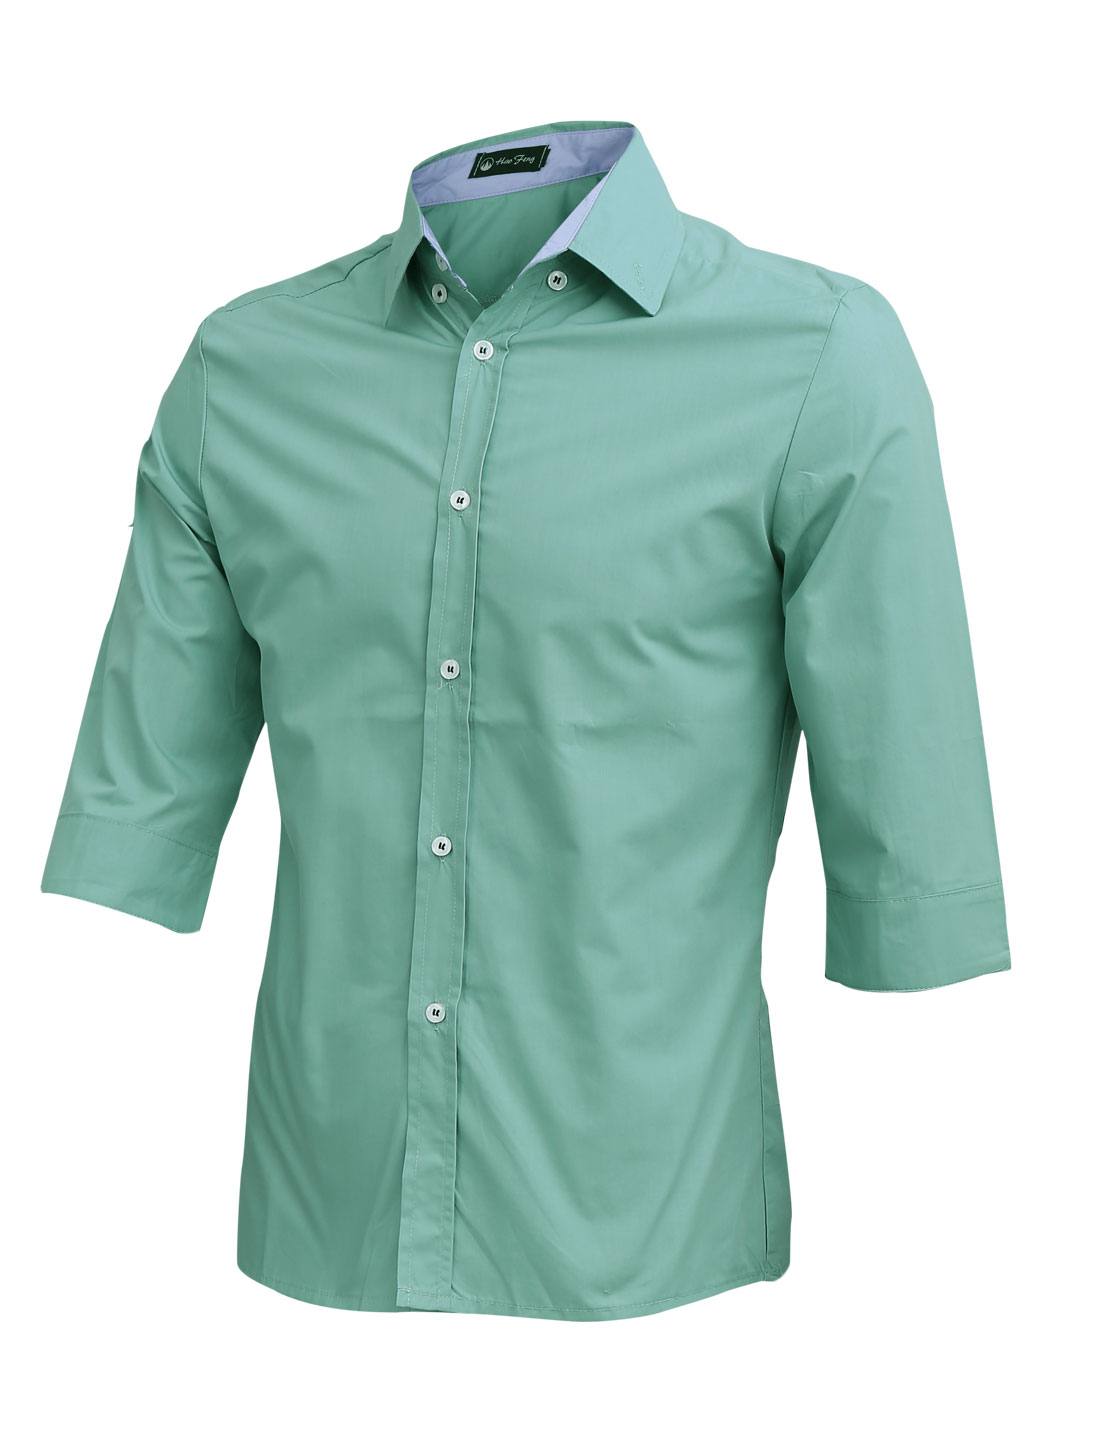 Men Button Up 3/4 Sleeve Leisure Shirt Dusty Green M